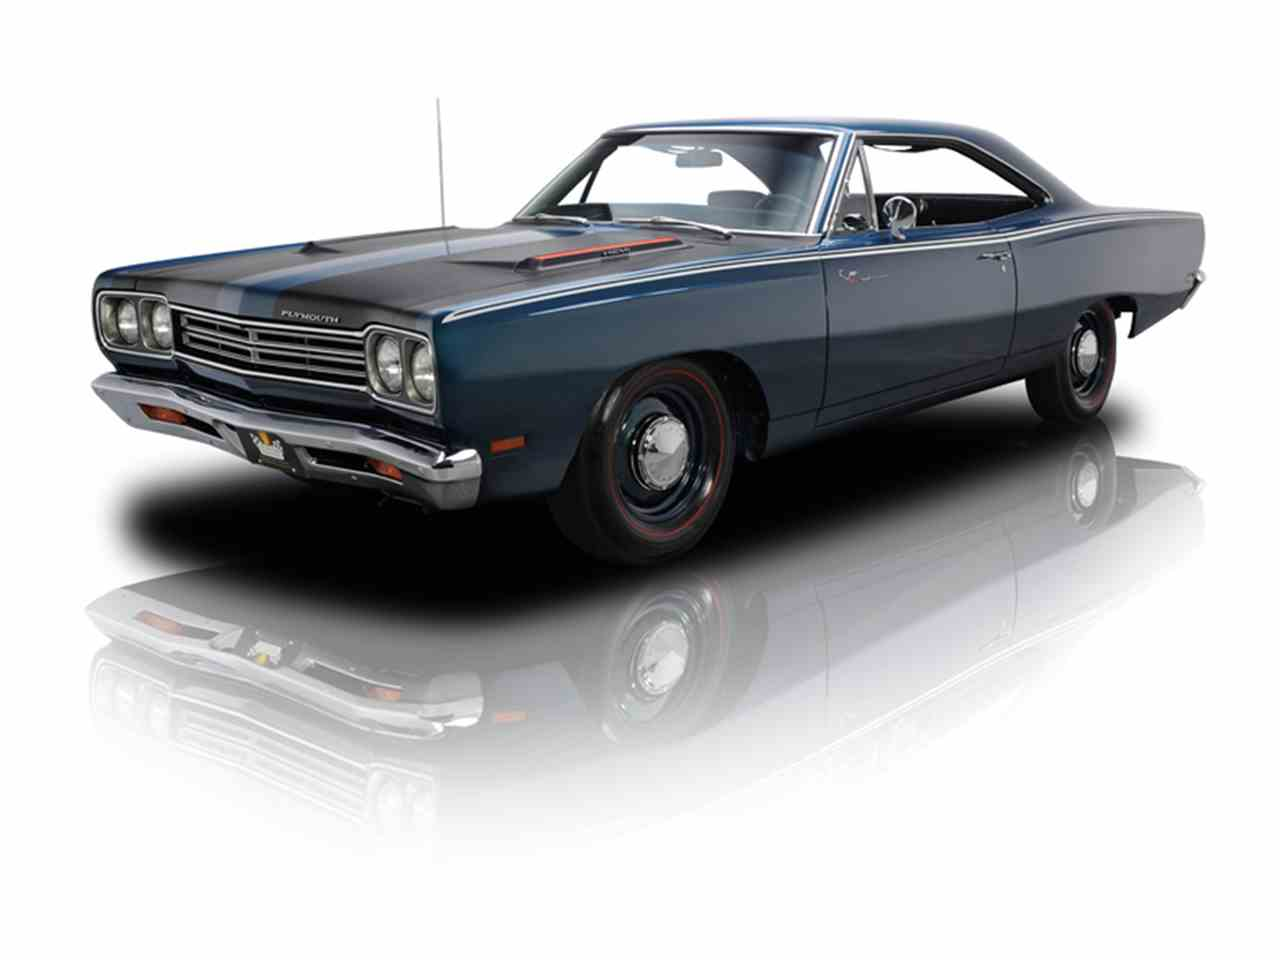 1969 Road Runner Wiring Diagram Manual E Books Roadrunner Plymouth Diagram1969 Library1969